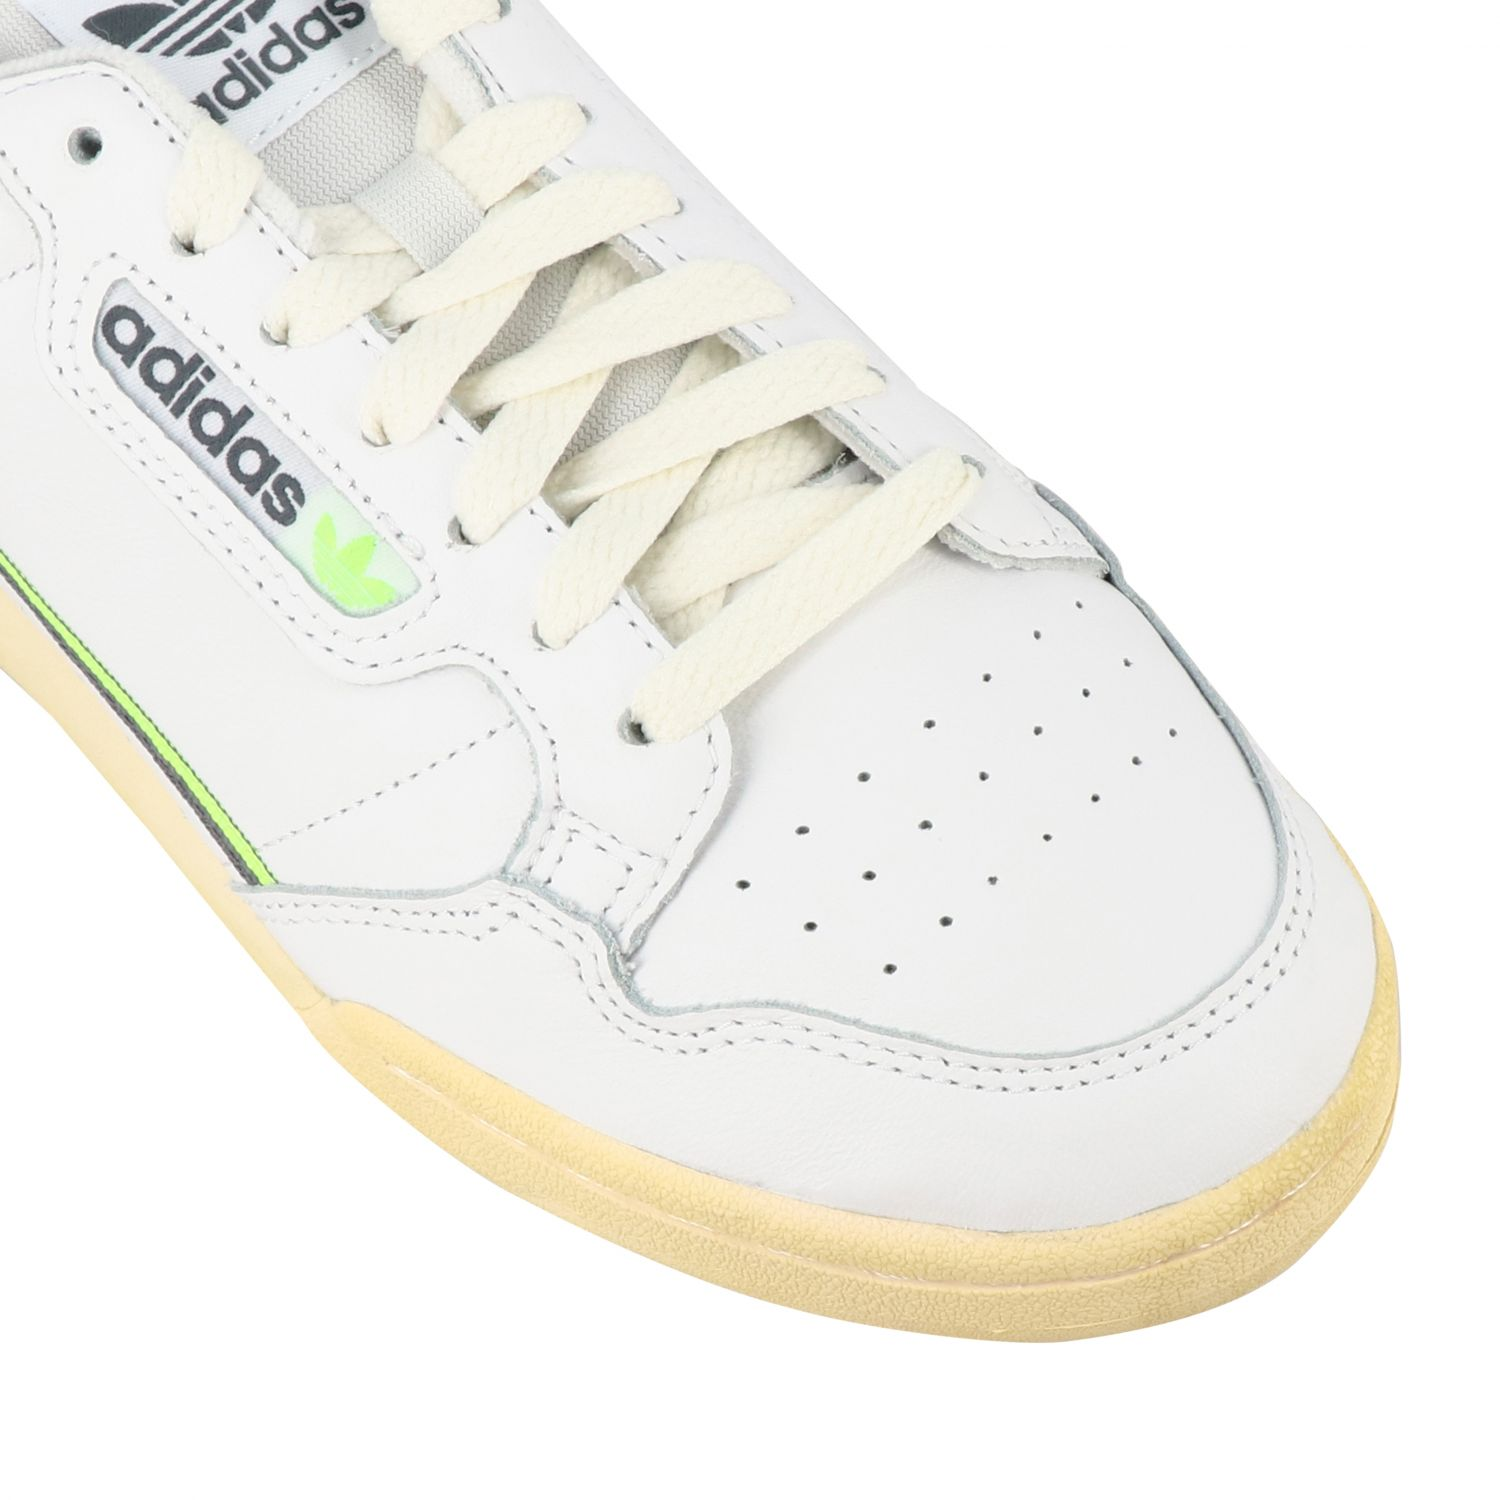 Sneakers Adidas Originals: Sneakers Continental 80 Adidas Originals in pelle bianco 4